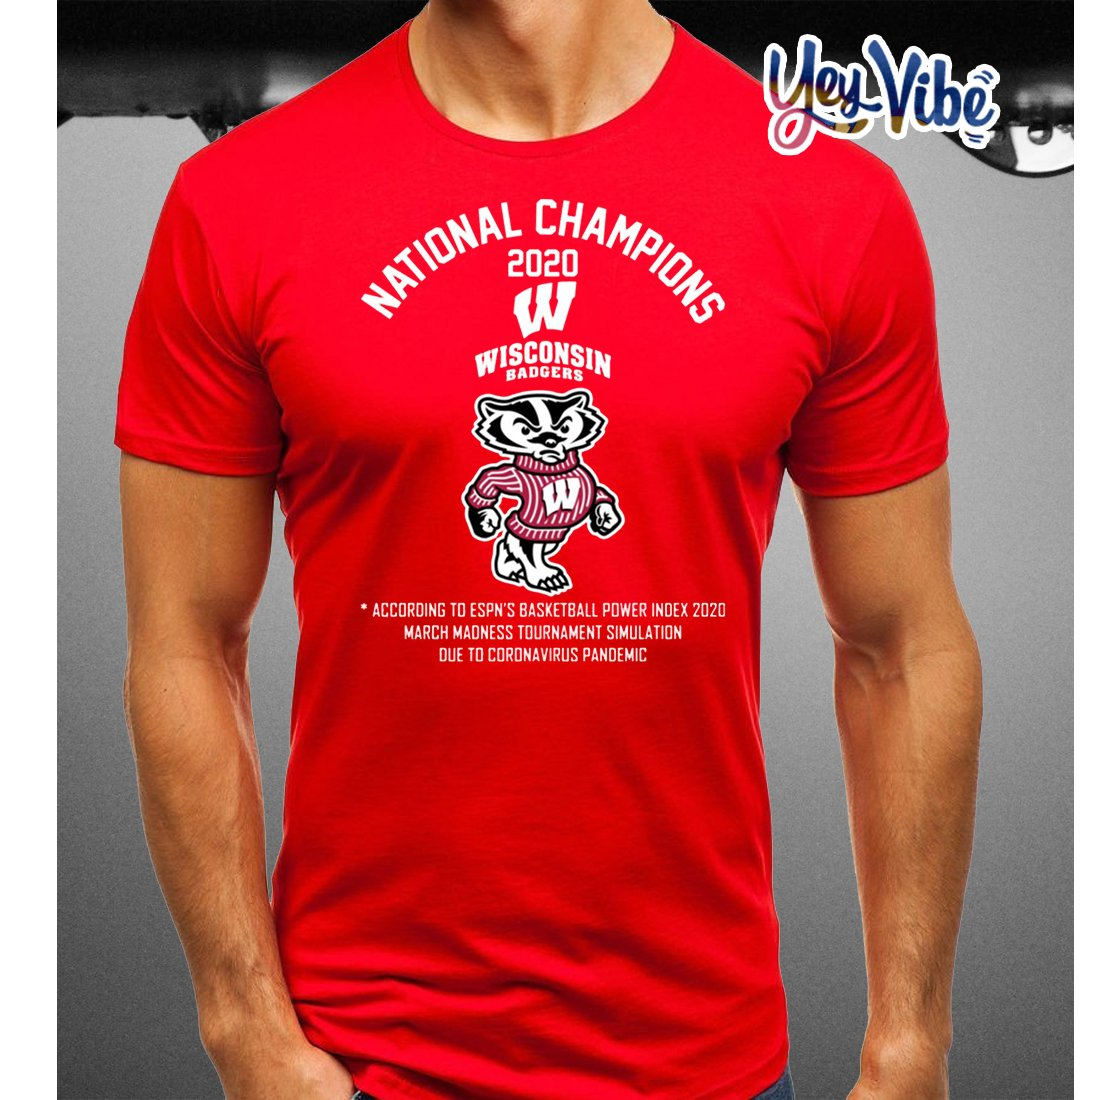 National Champions 2020 Wisconsin Badgers t-shirts